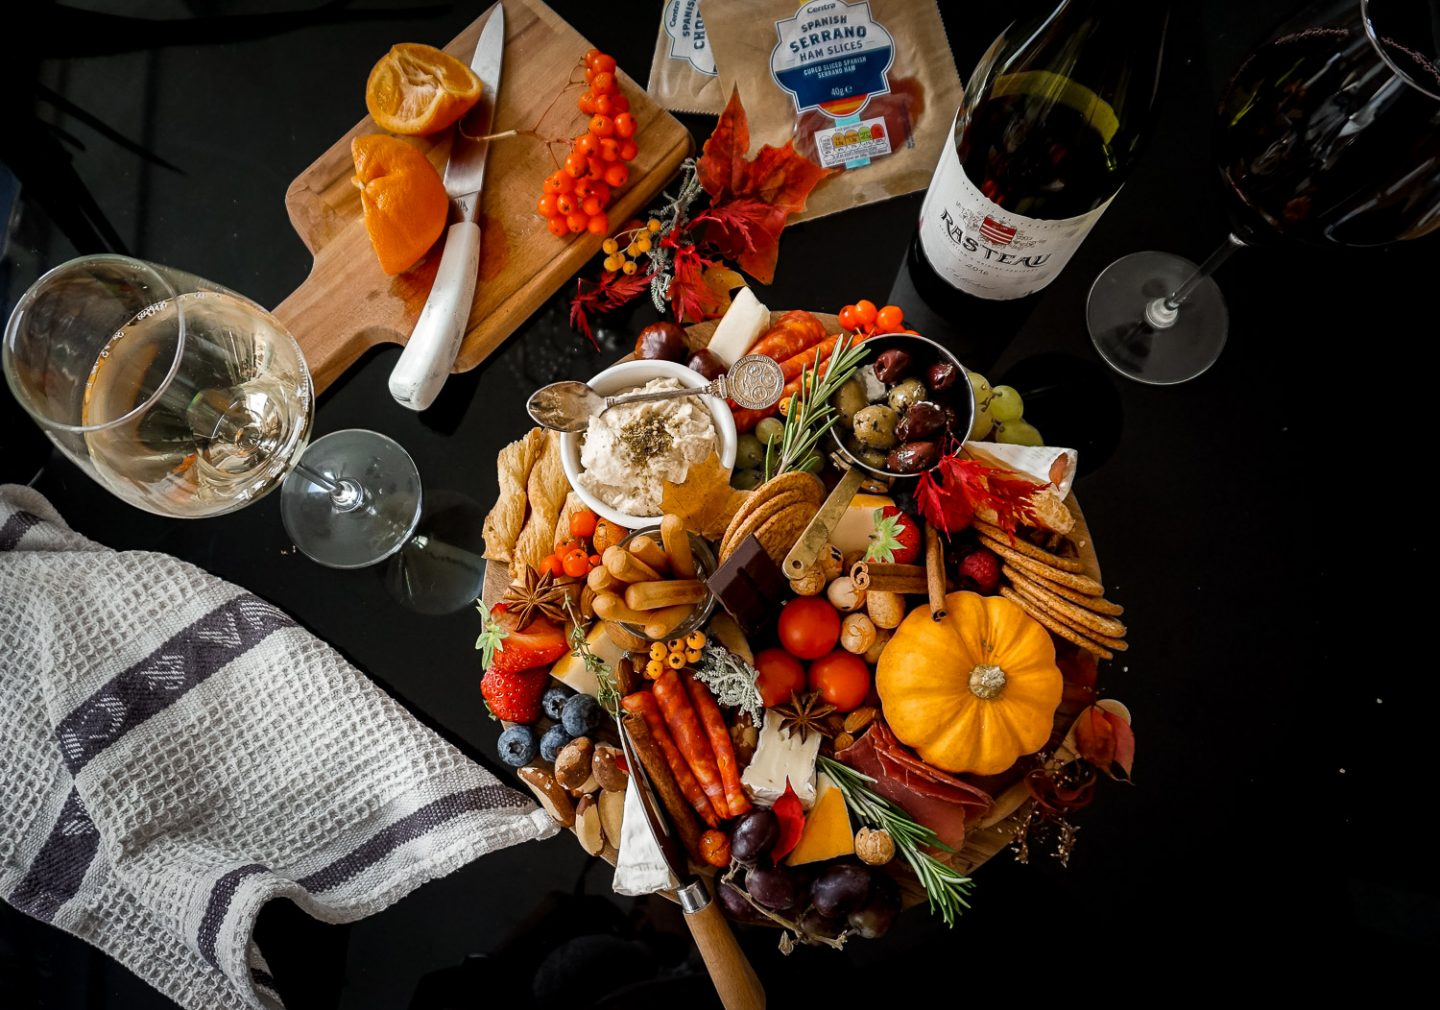 Autumn grazing platter with Centra Wine and snacks